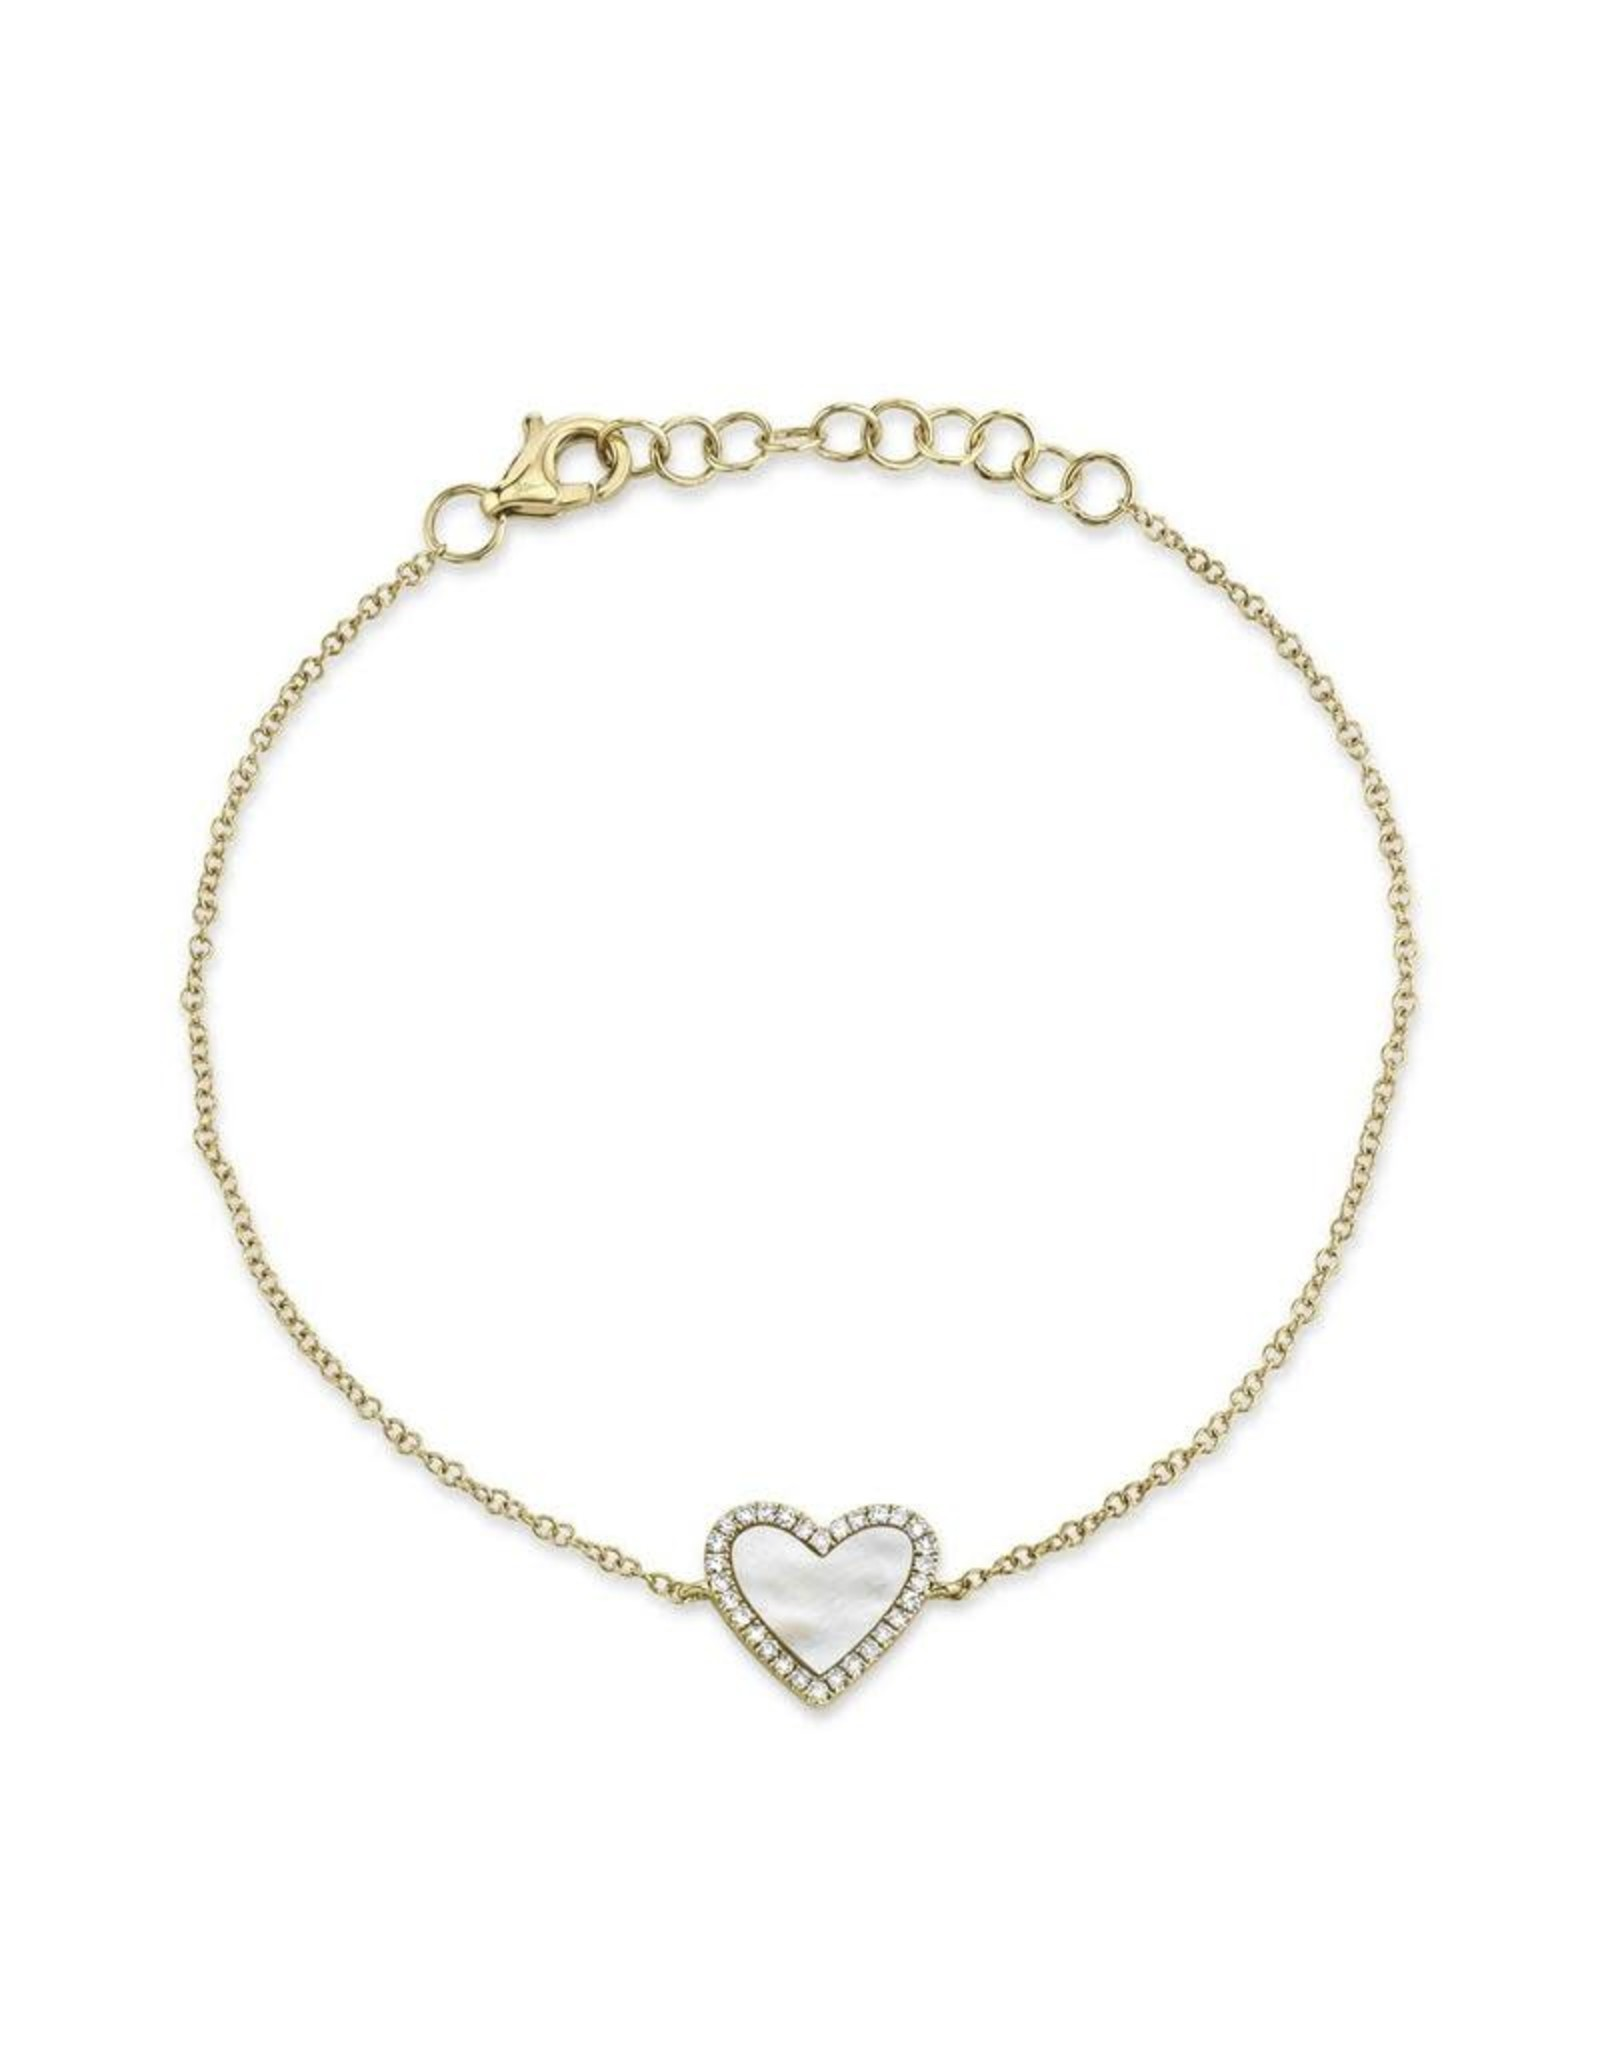 14K Yellow Gold Mother of Pearl and Diamond Heart Bracelet, MOP: 0.56ct, D: 0.09ct